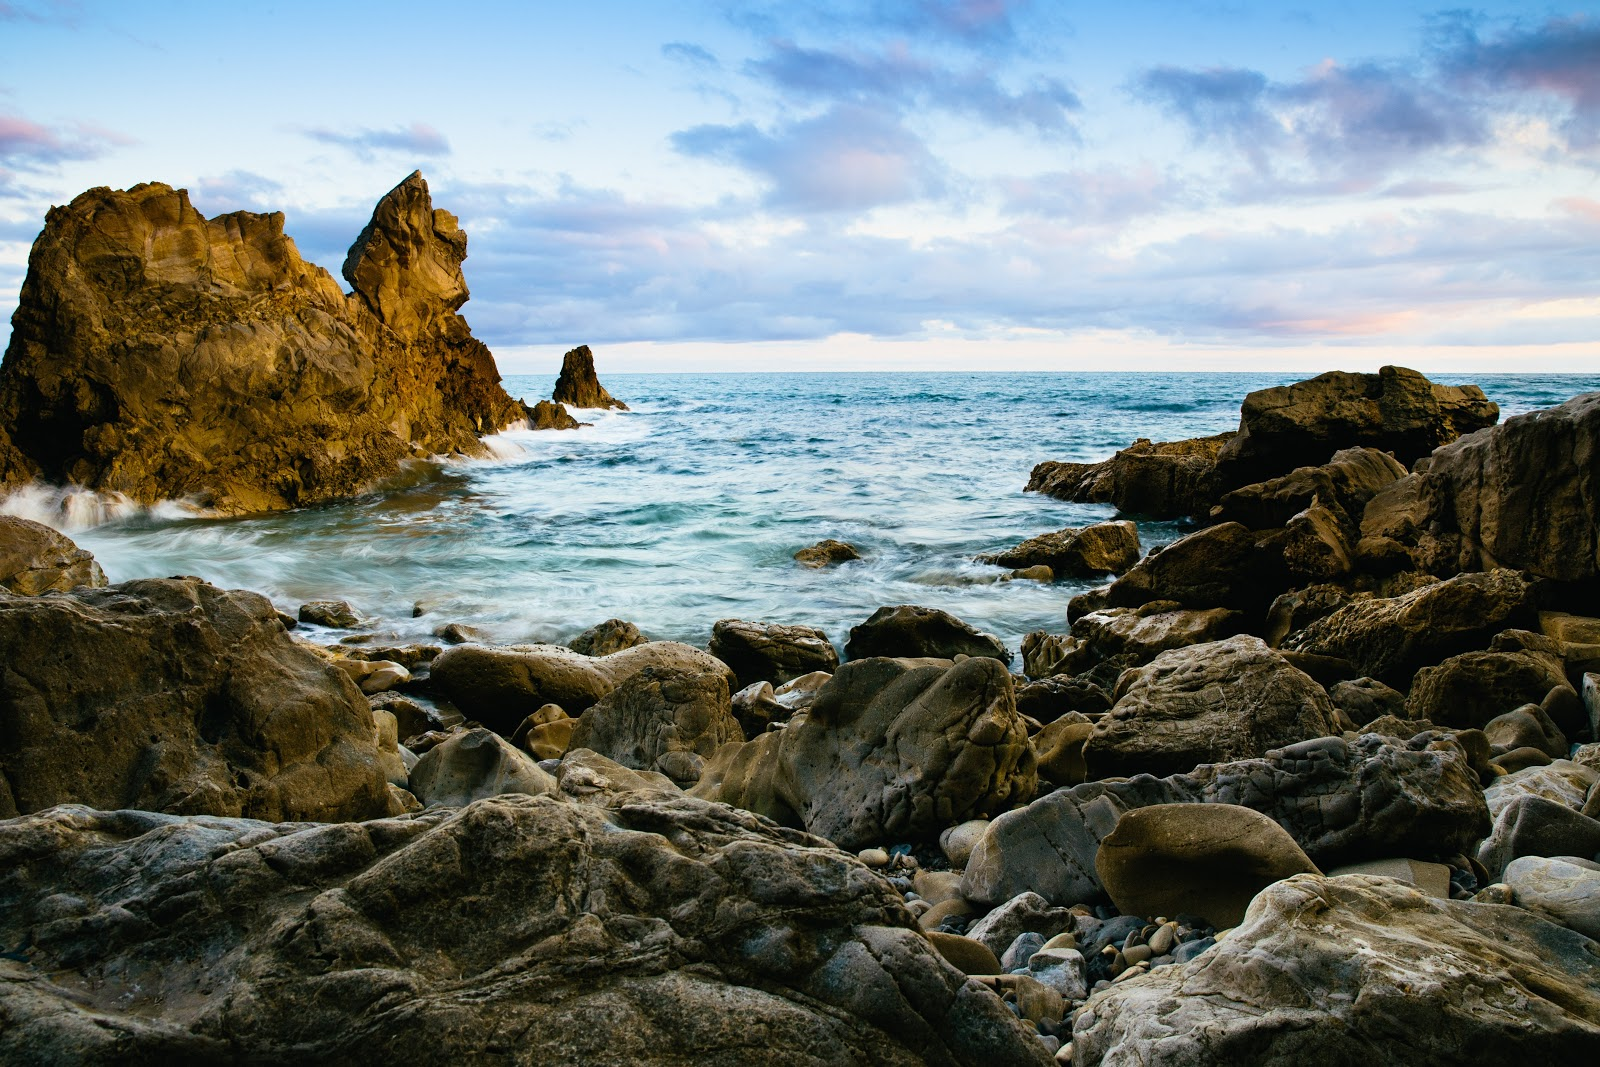 beautiful view of rocks and water on Little Corona Del Mar